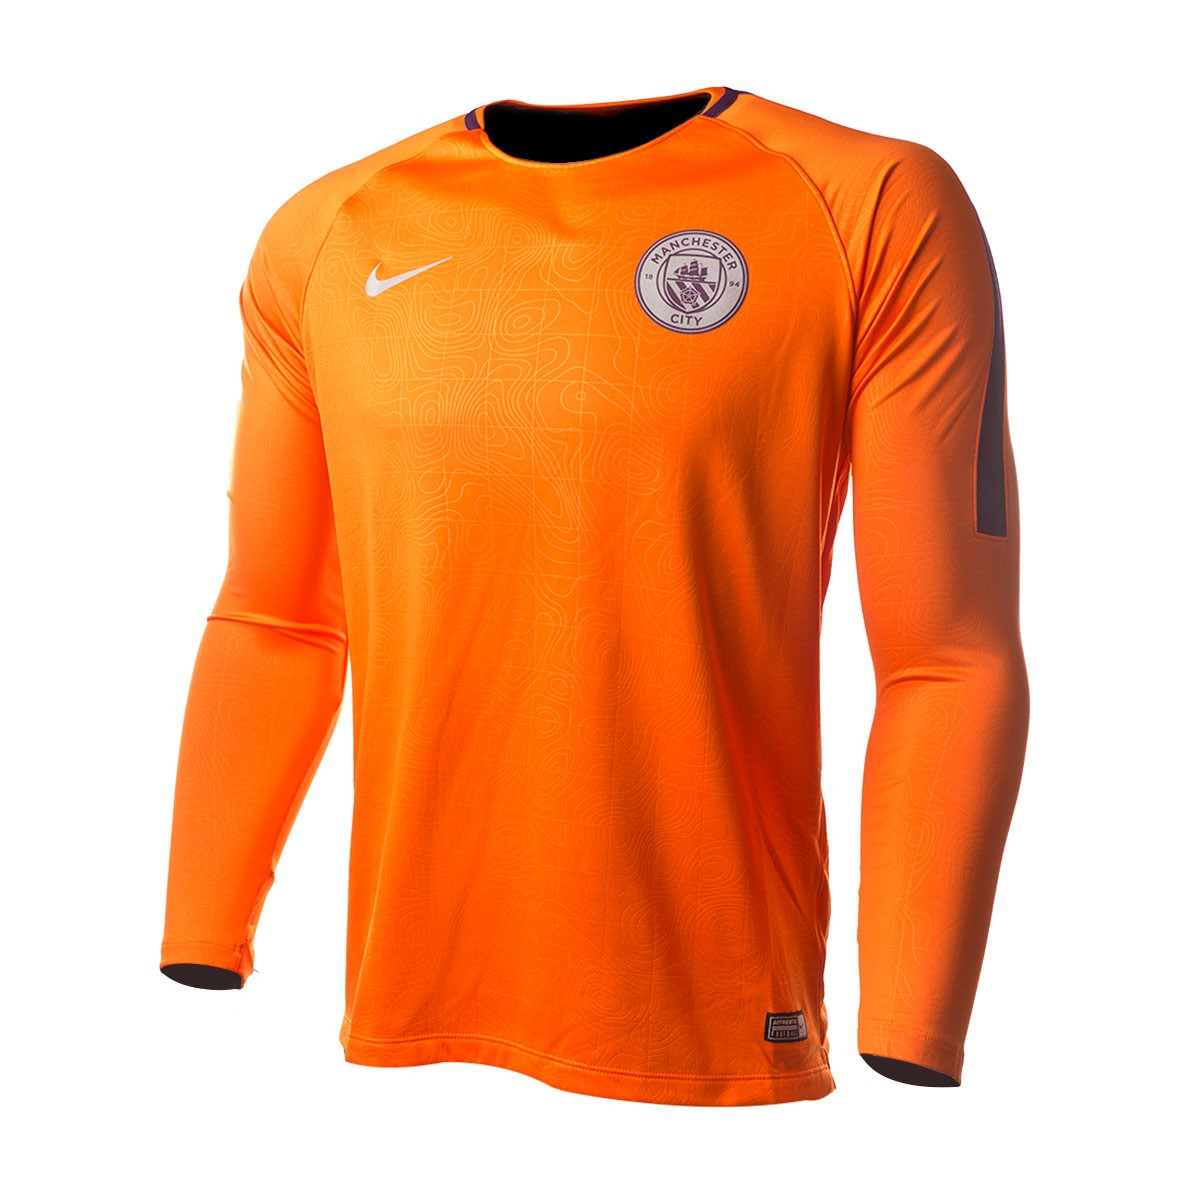 6afa22bdb Sweatshirt Nike Manchester City FC Squad 2018-2019 Safety orange ...